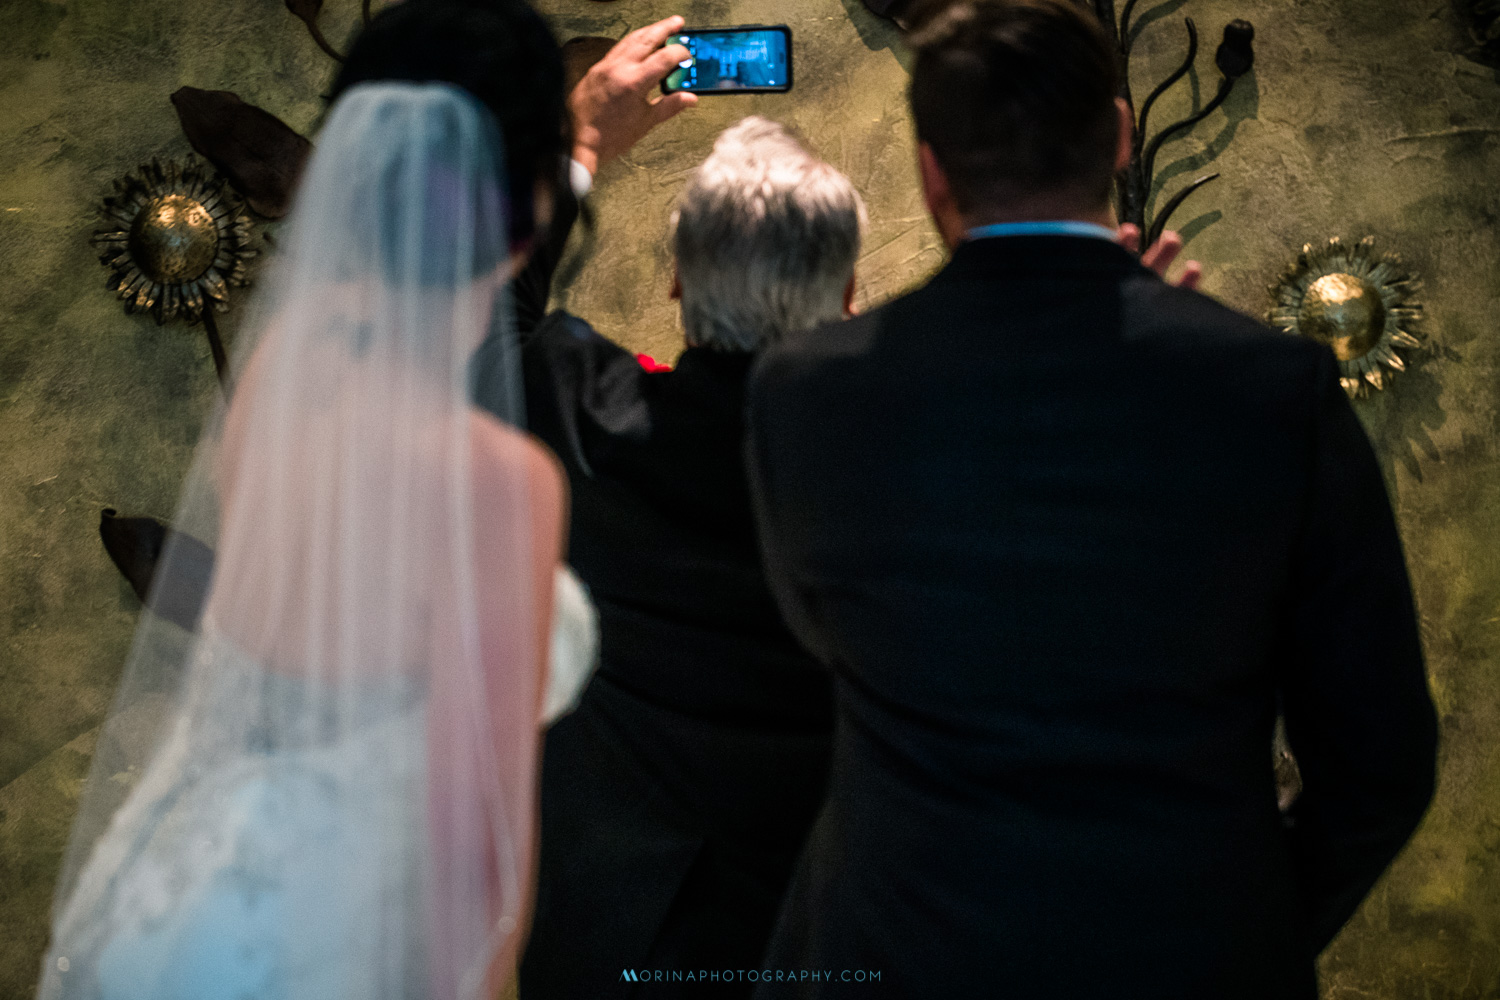 Jill & Rhett Wedding at Artesano Iron Works, Manayunk Philadelphia64.jpg